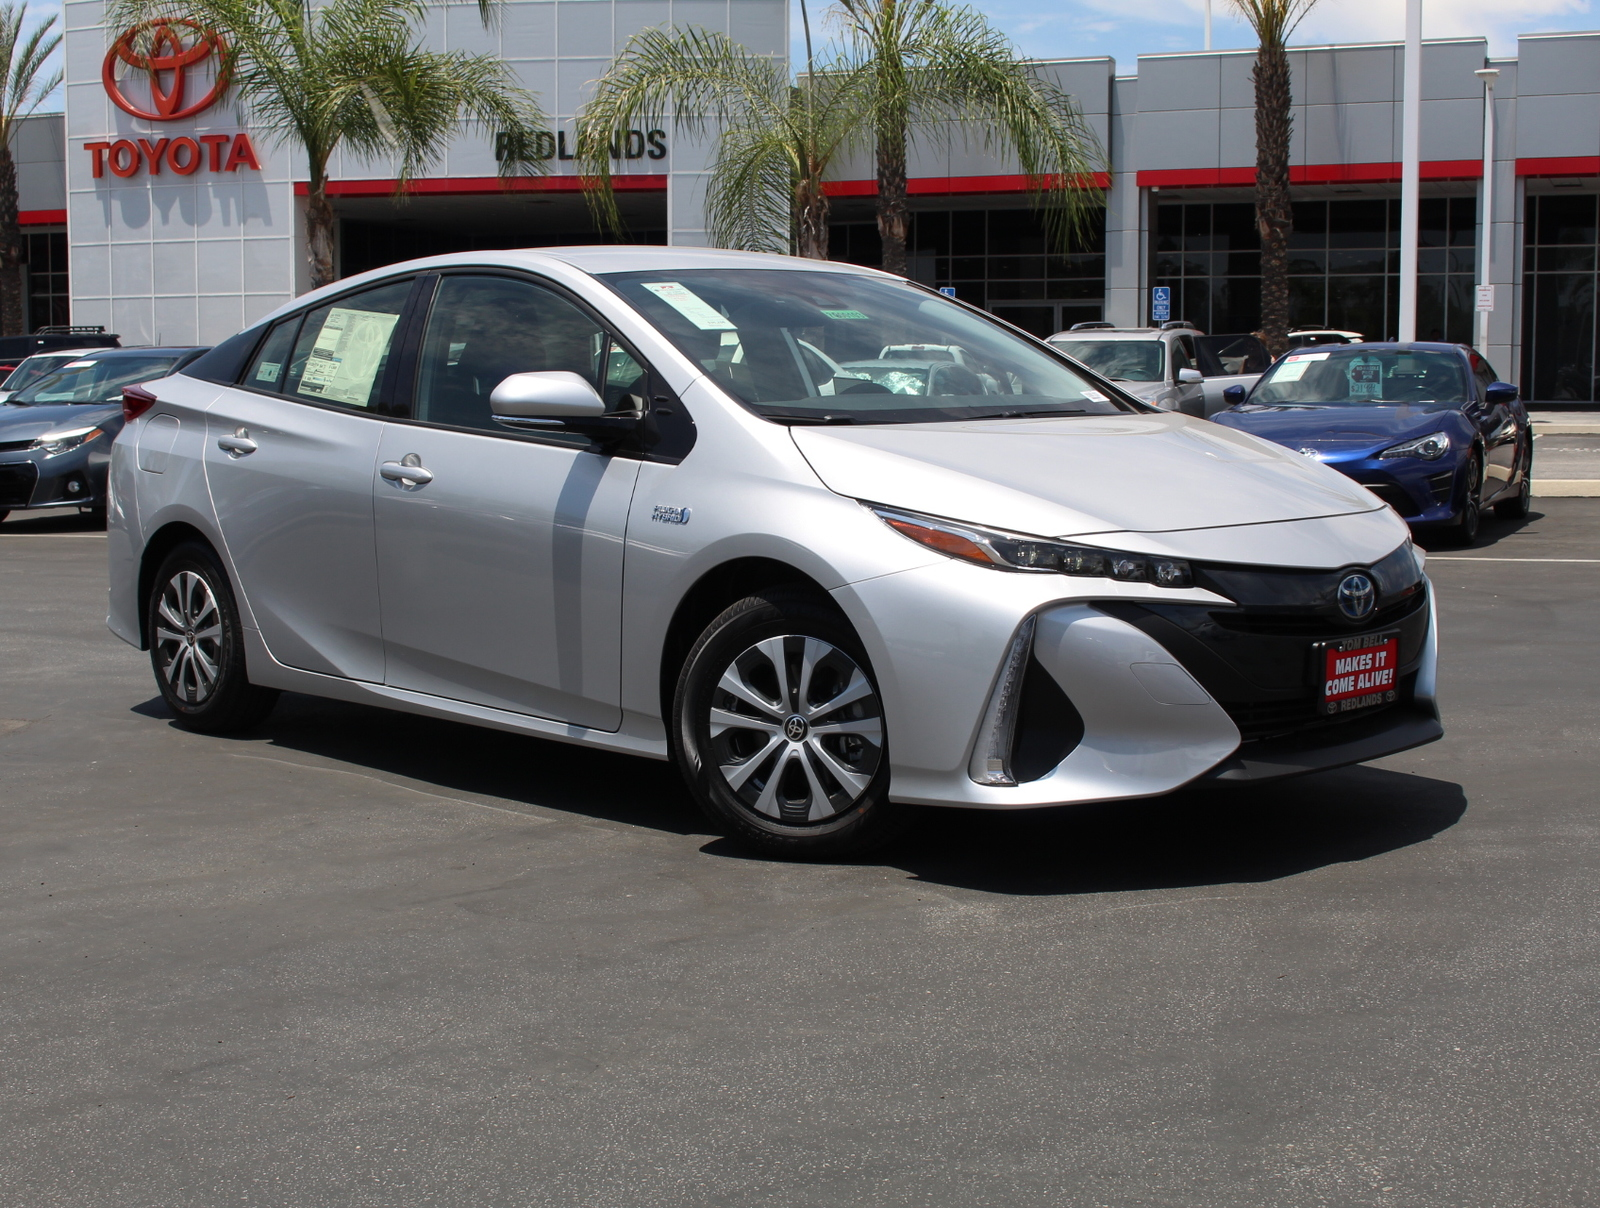 2020 Toyota Prius Review.Toyota Prius 2020 An In Depth Review Peeker Automotive